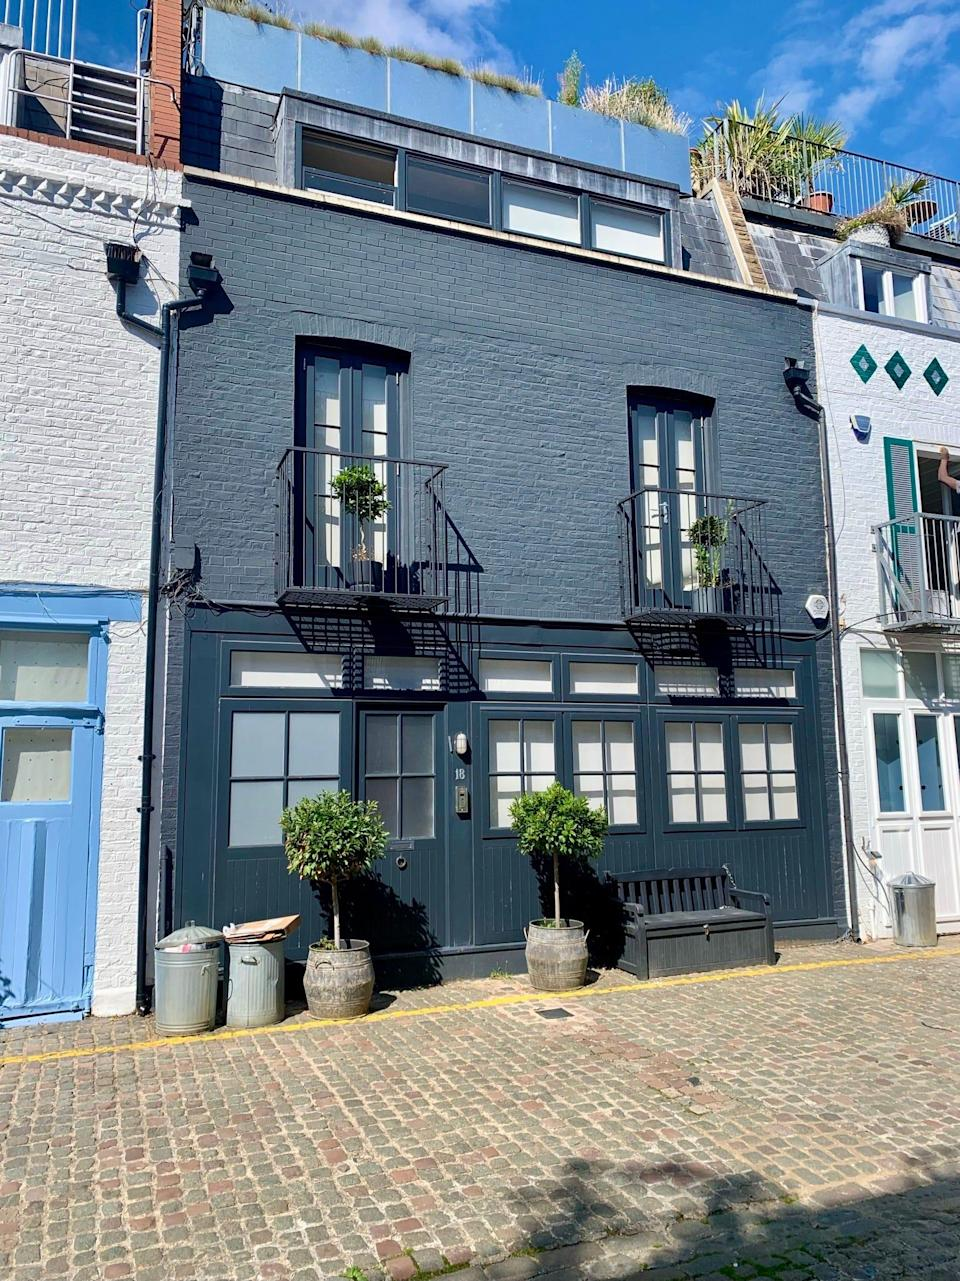 Number 18 St. Lukes Mews is a darker grey and has neat plant pots outside.